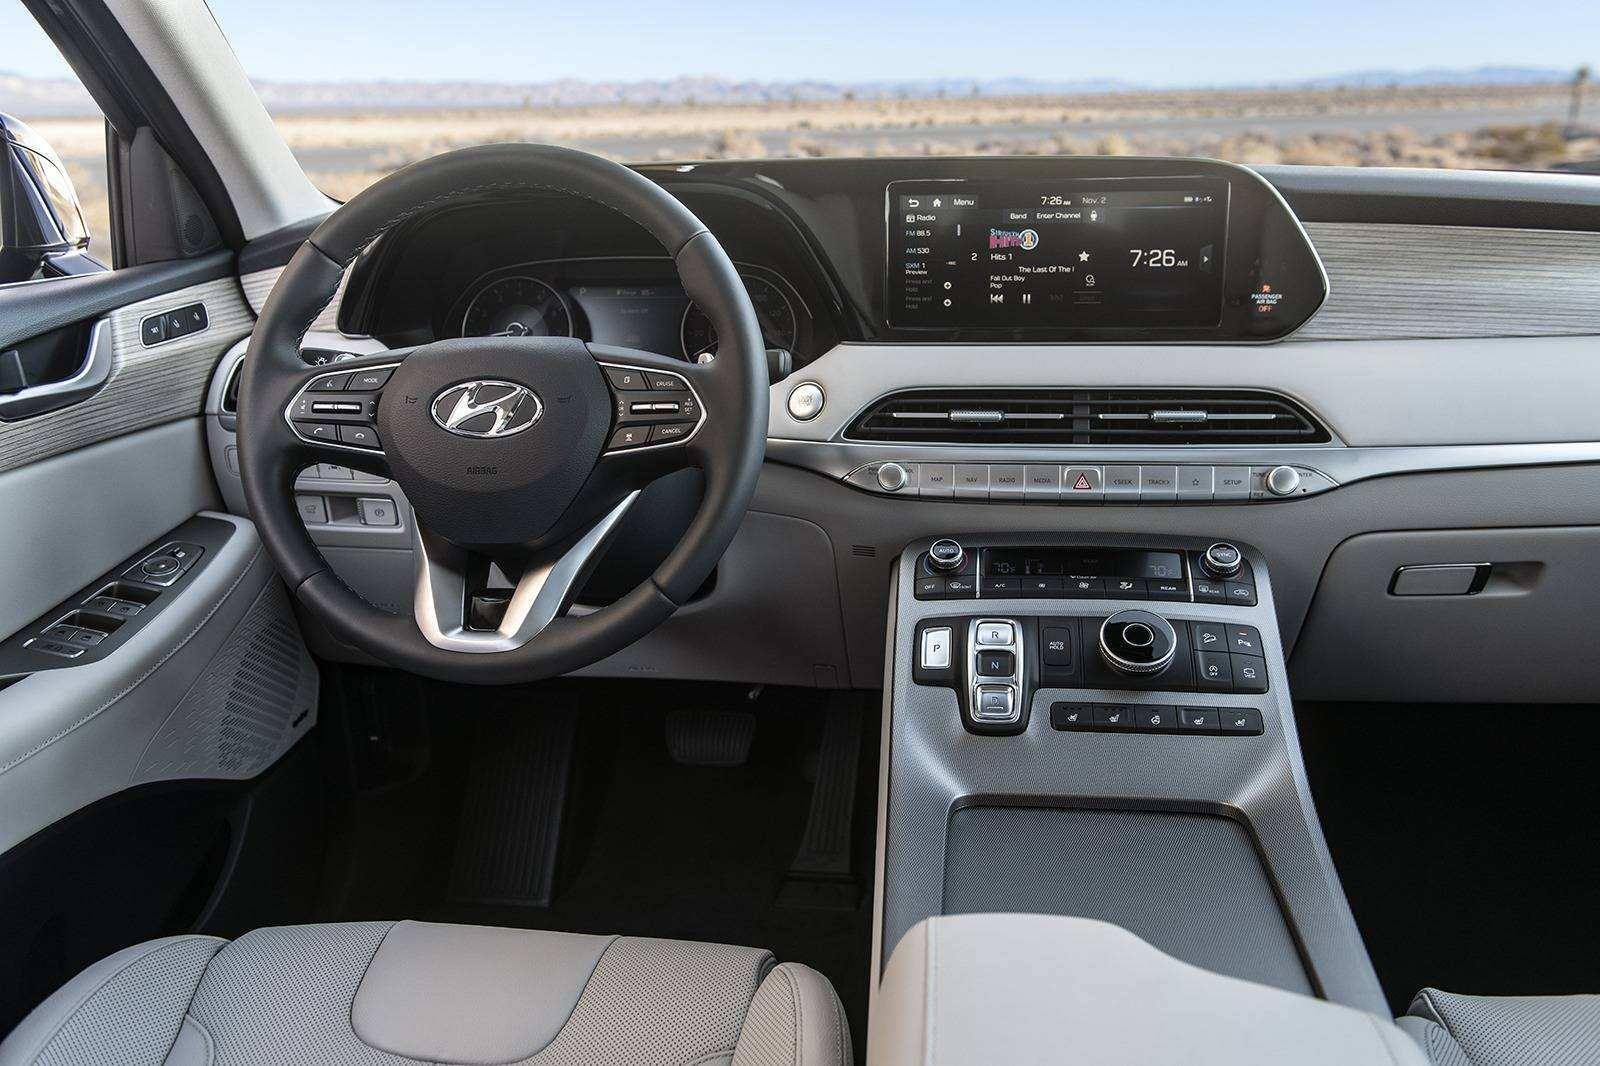 45 All New Hyundai Palisade 2020 Specs Speed Test by Hyundai Palisade 2020 Specs